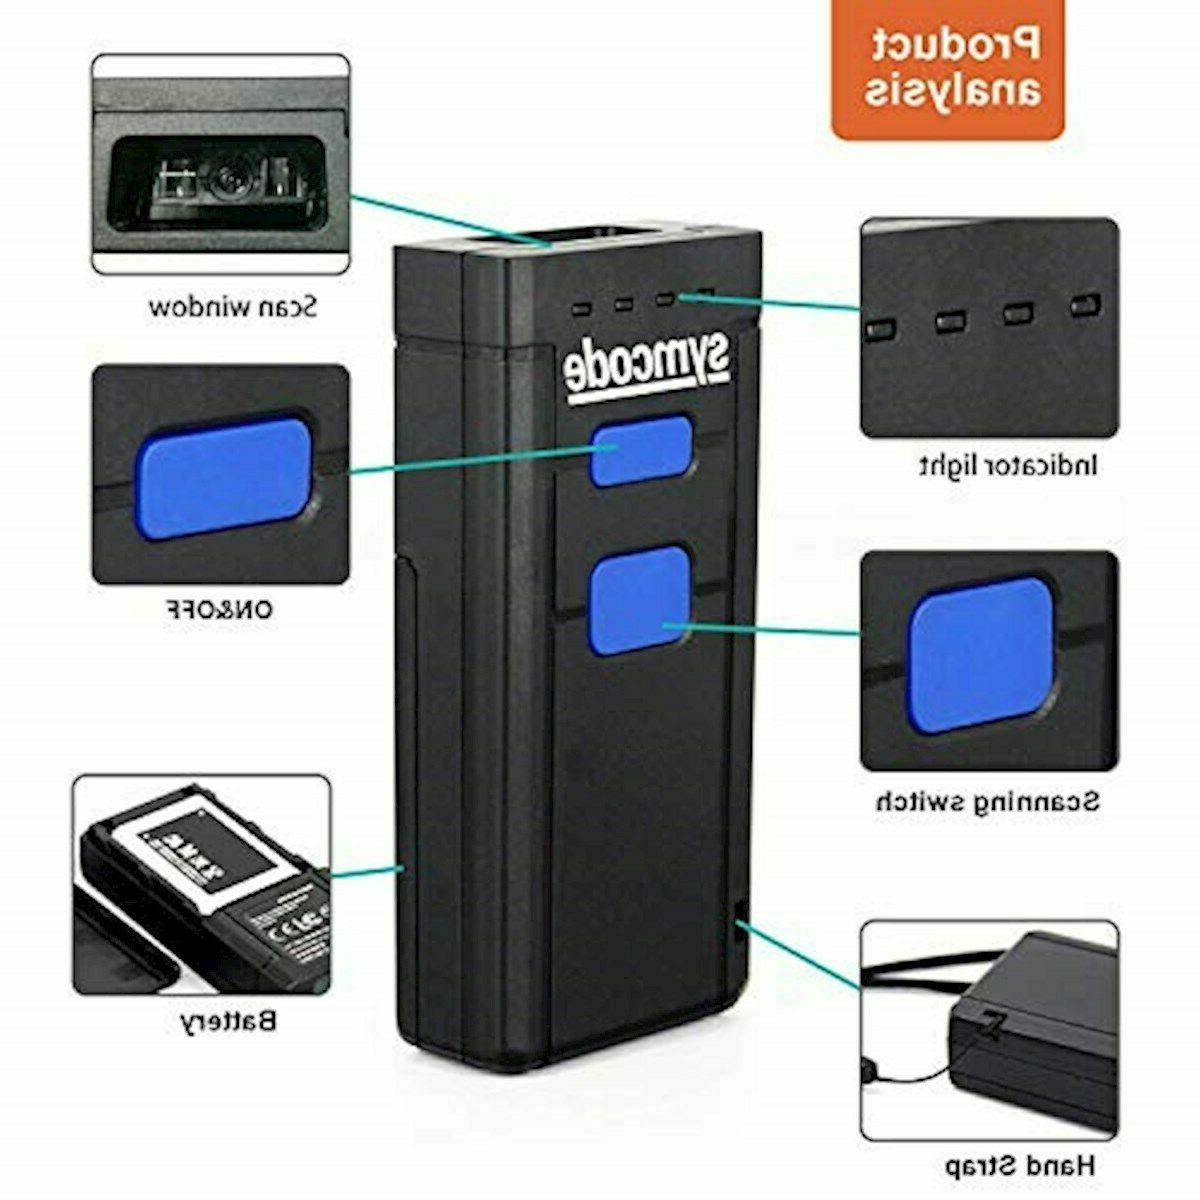 BARCODE Wireless USB Portable -